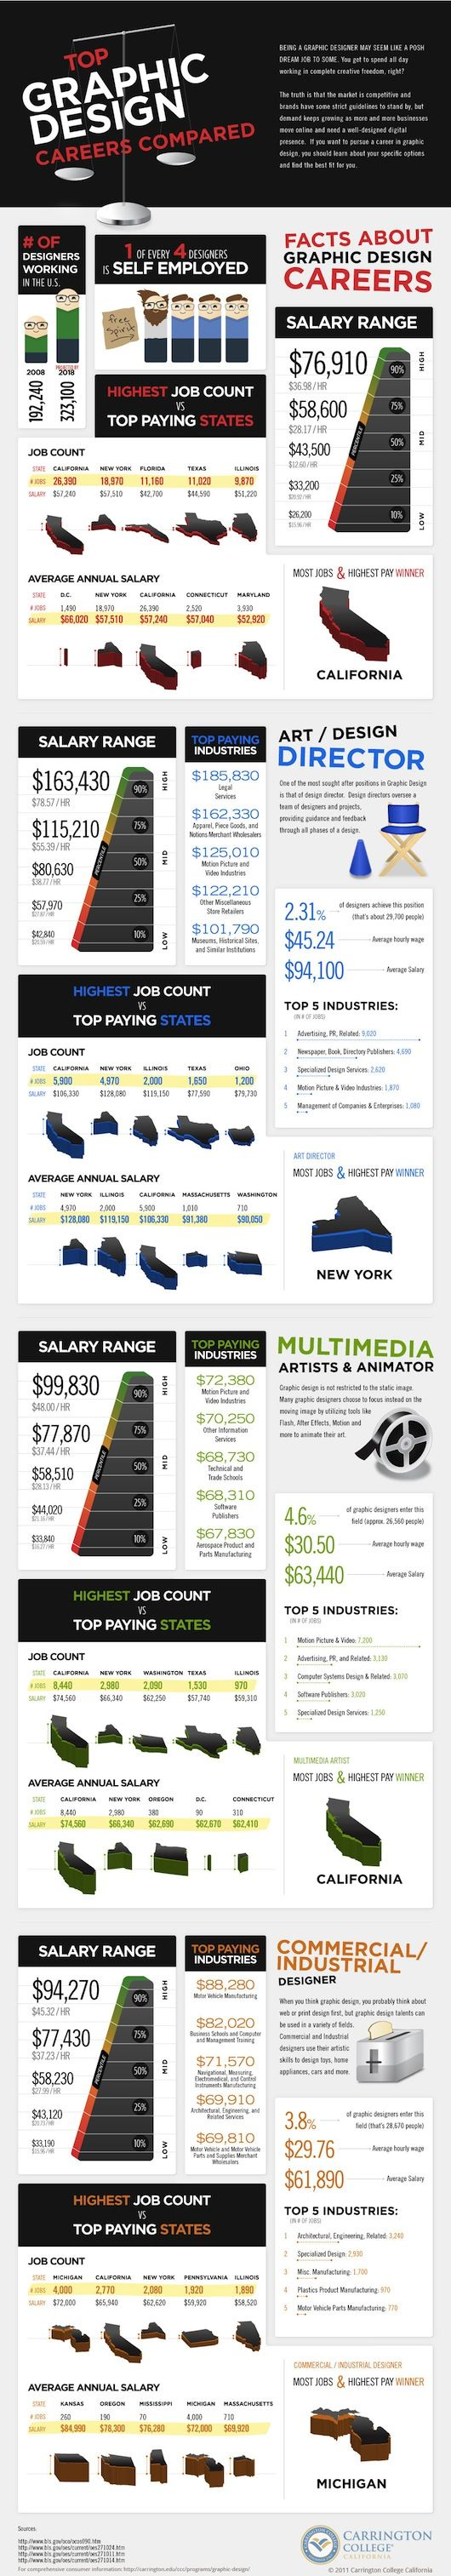 INFOGRAPHIC: How Much Do Graphic Designers Make?